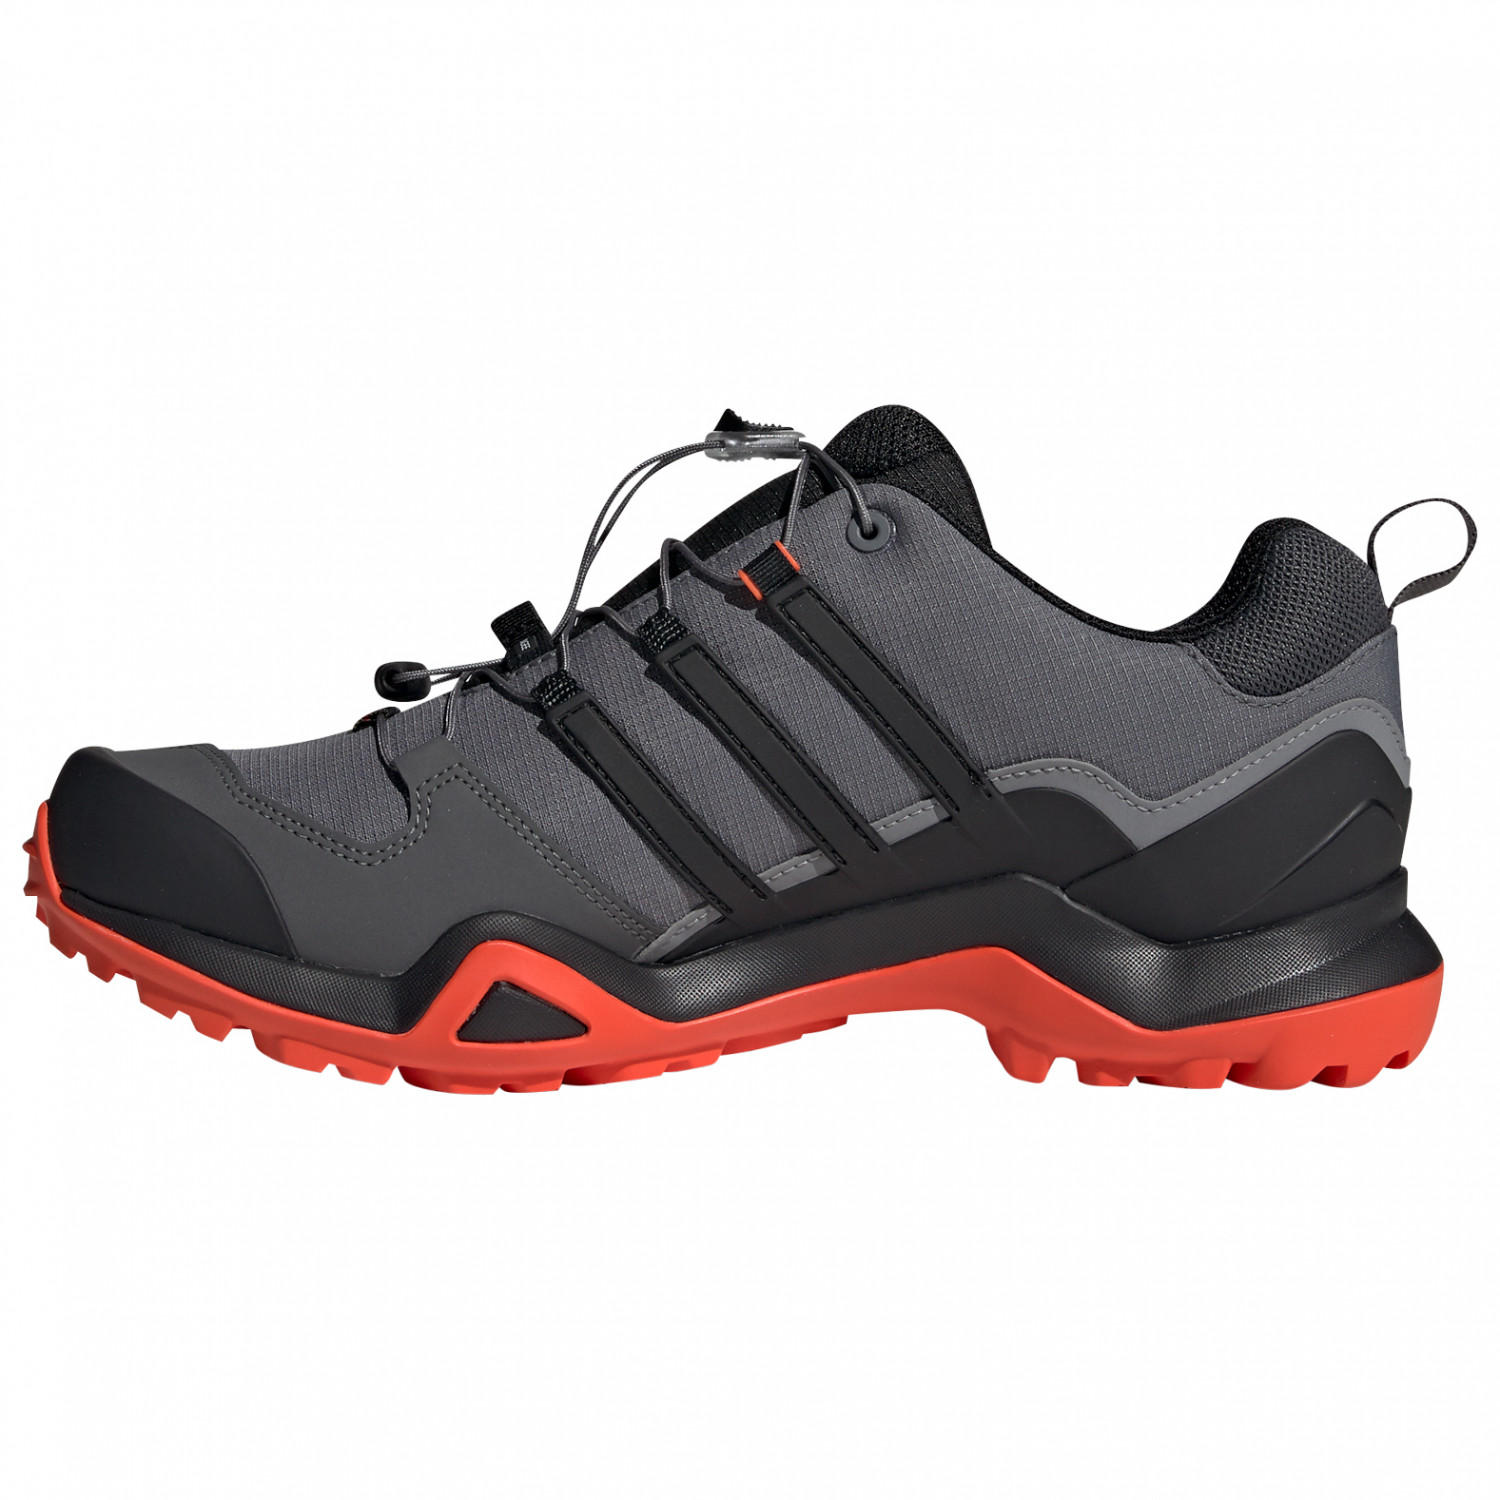 new products 406d4 54a64 ... adidas - Terrex Swift R2 GTX - Chaussures multisports ...